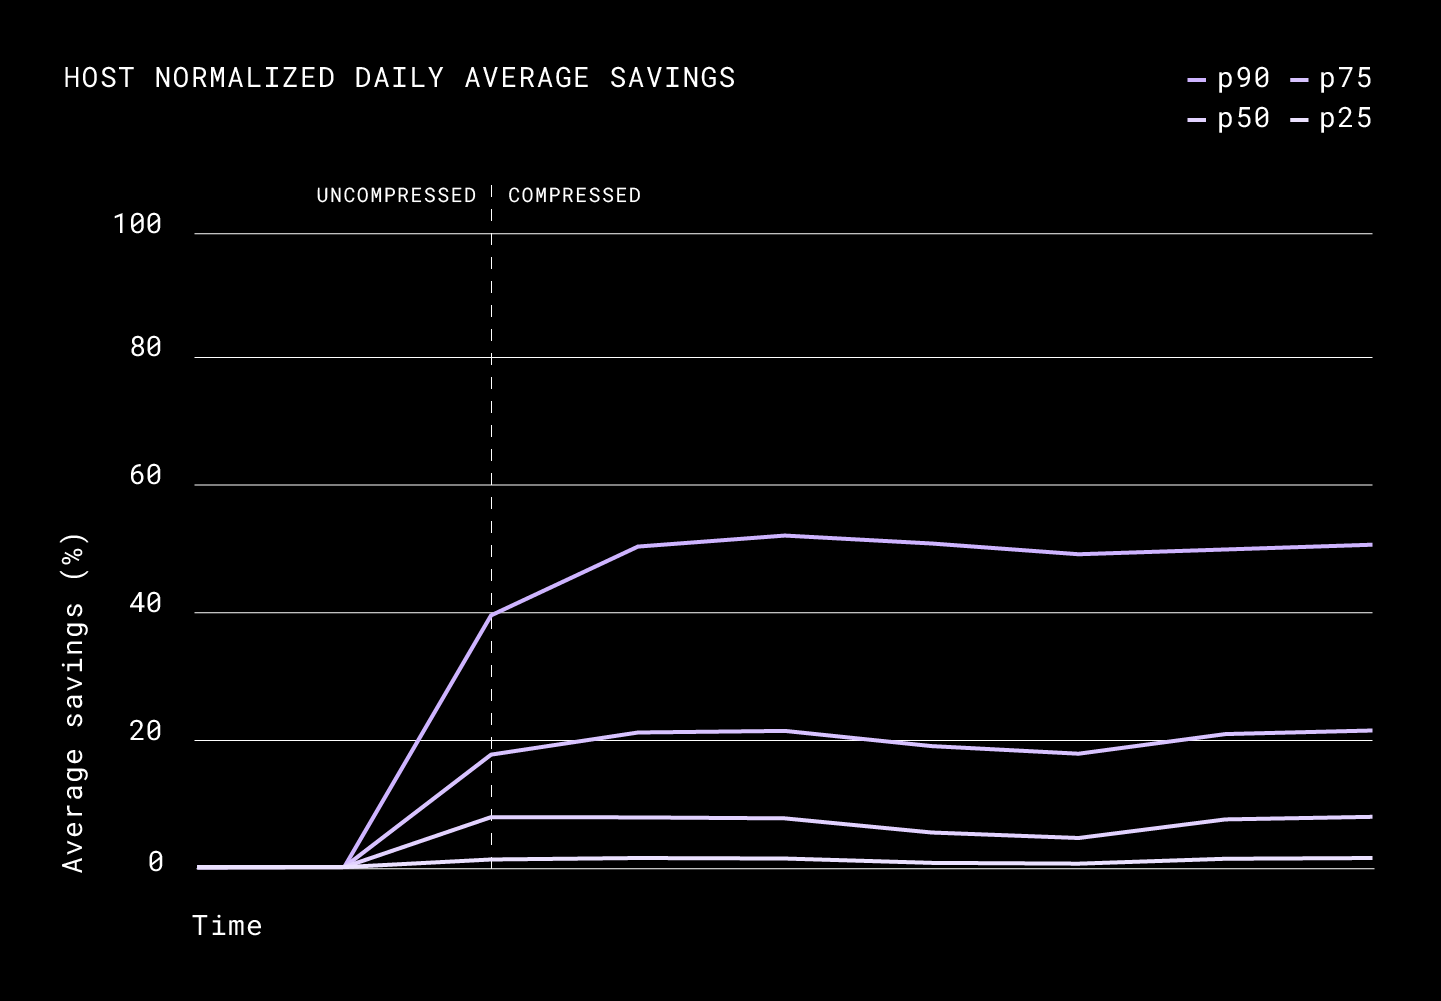 Host normalized daily average savings